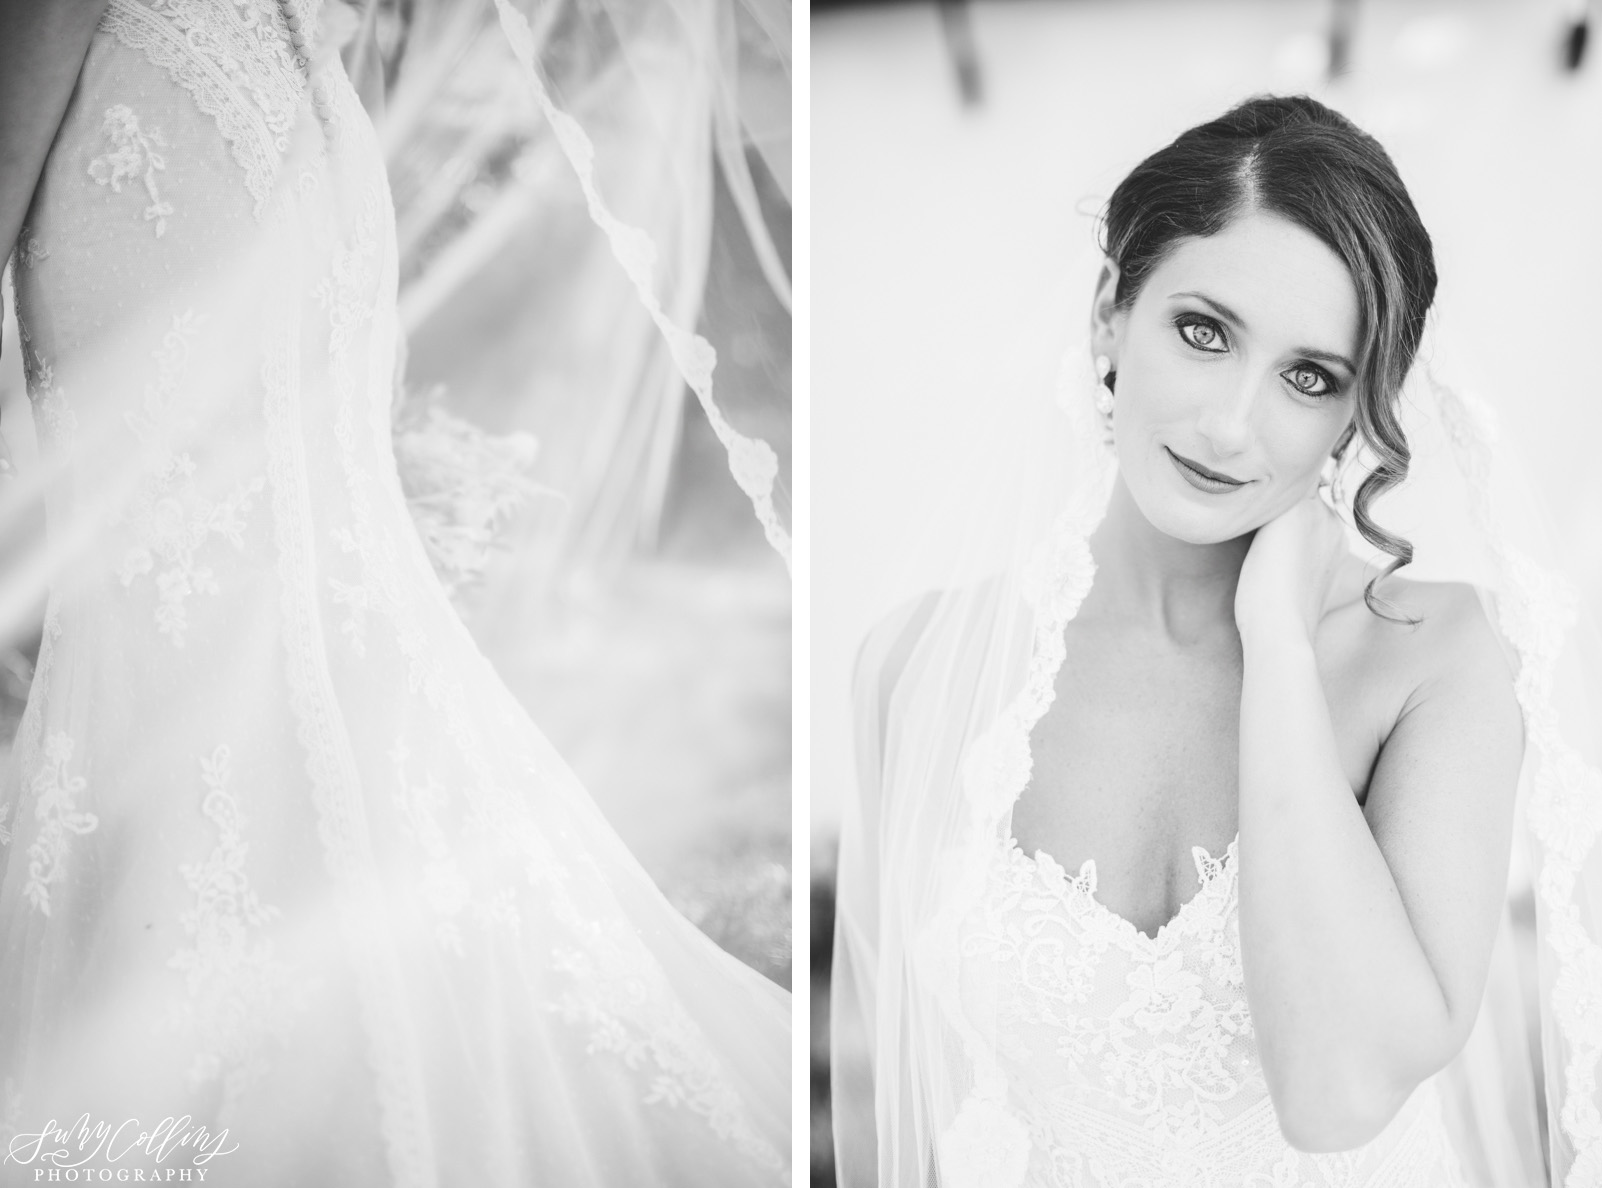 poses, indoor, romantic, spring, light and airy, natural light, ideas, passion, artistic, creative, inspiration, editorial, art, lighting, love, Knoxville, Tennessee, Cherokee country club, vibrant, colorful, bright, black and white, bride, bridal portraits